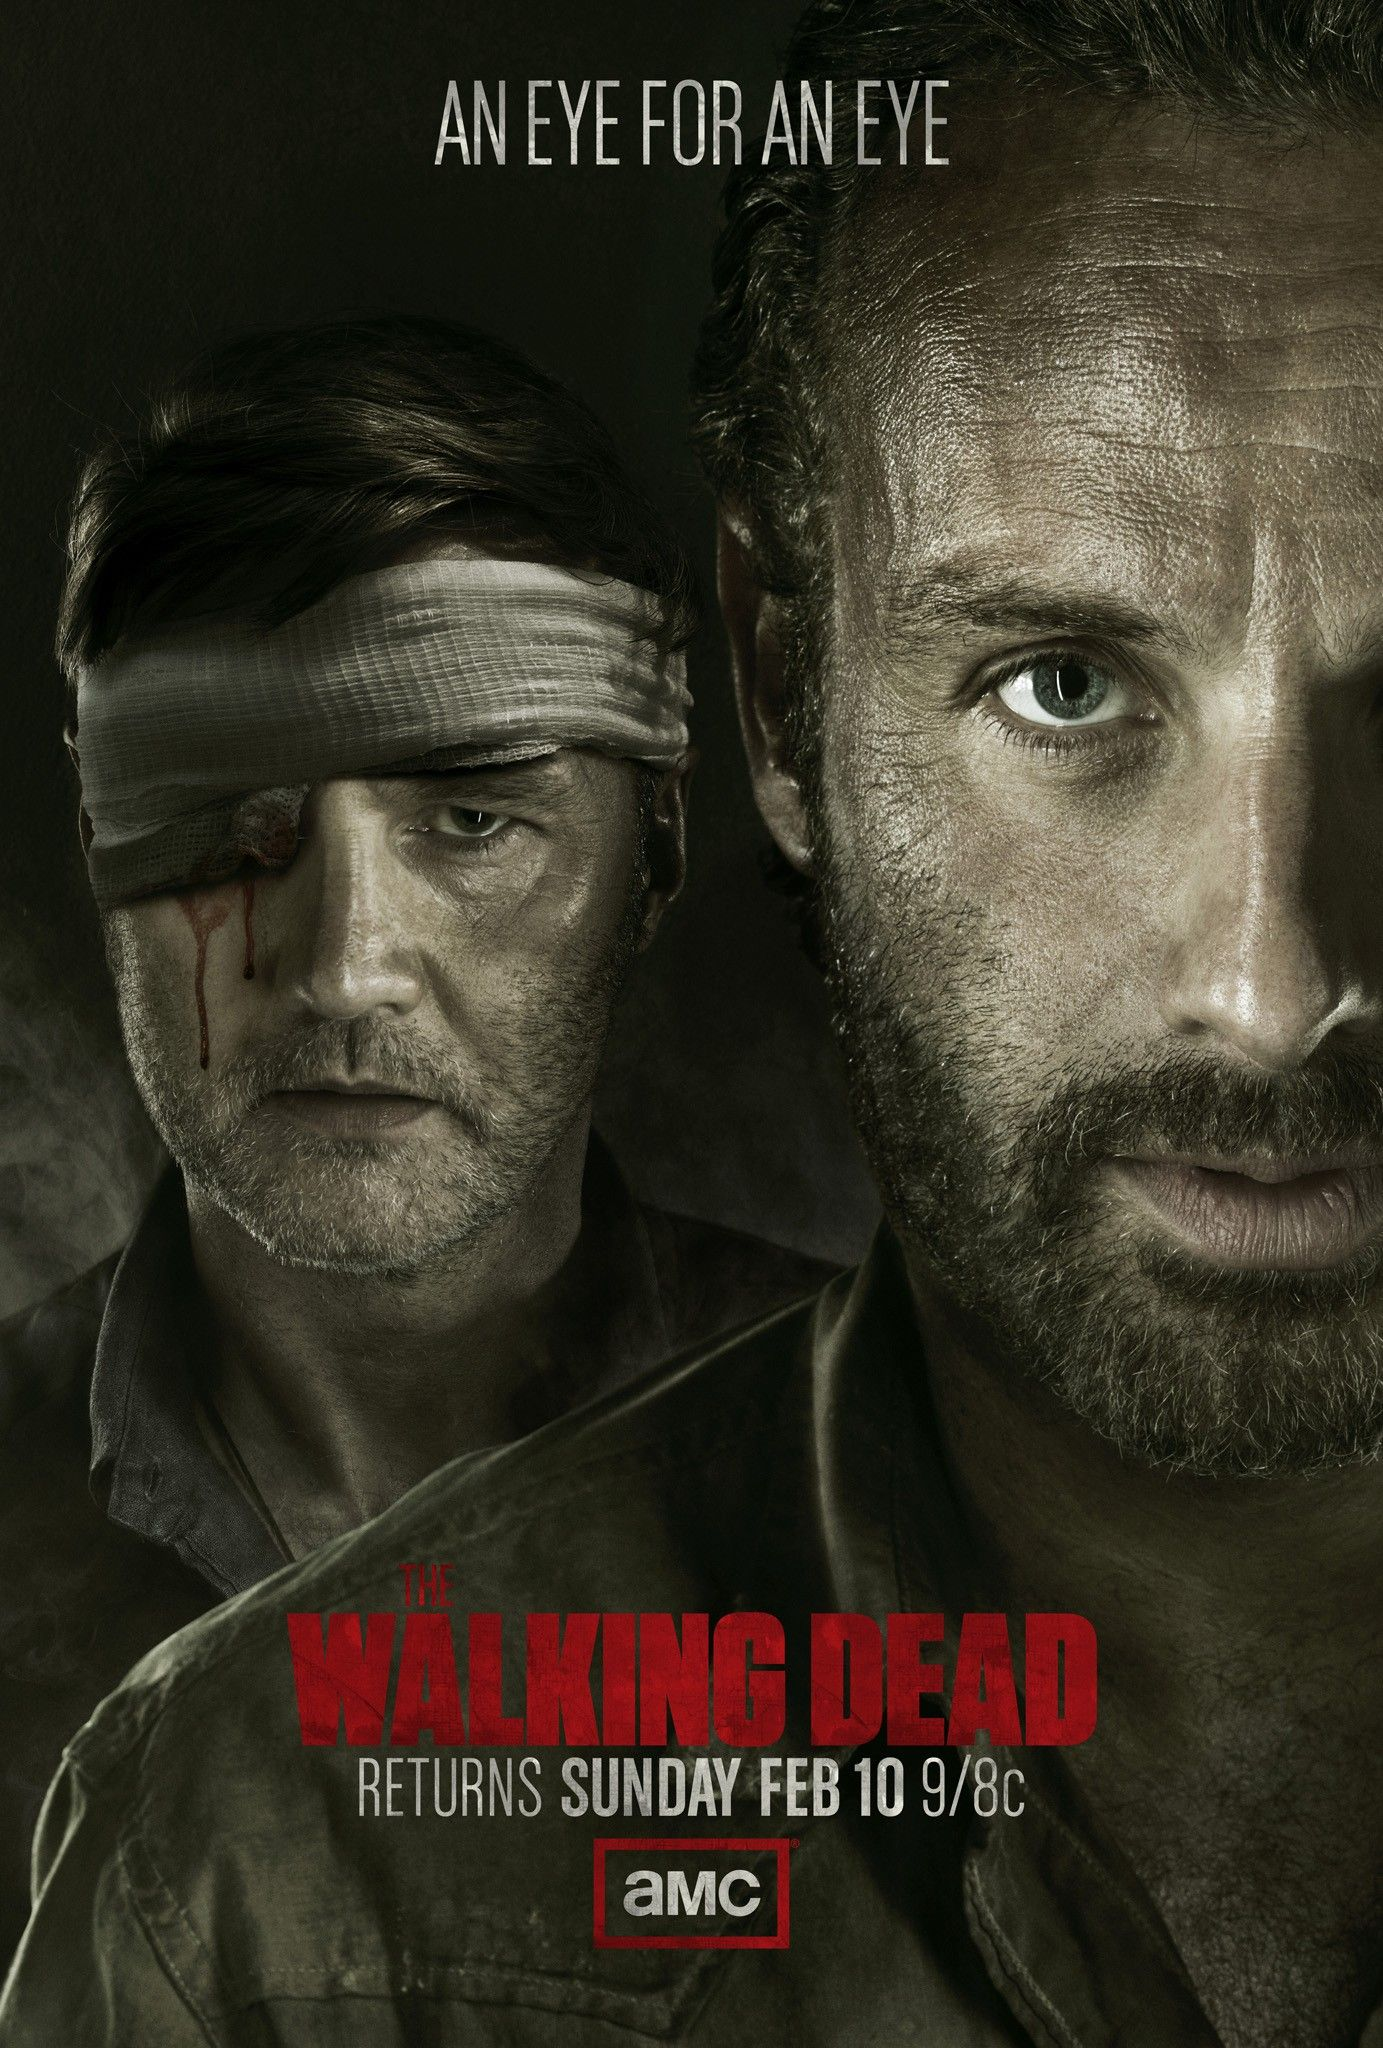 The Walking Dead Season 9 Rick Grimes Final Episodes Trailers Artwork The Walking Dead Poster Walking Dead Season The Walking Dead